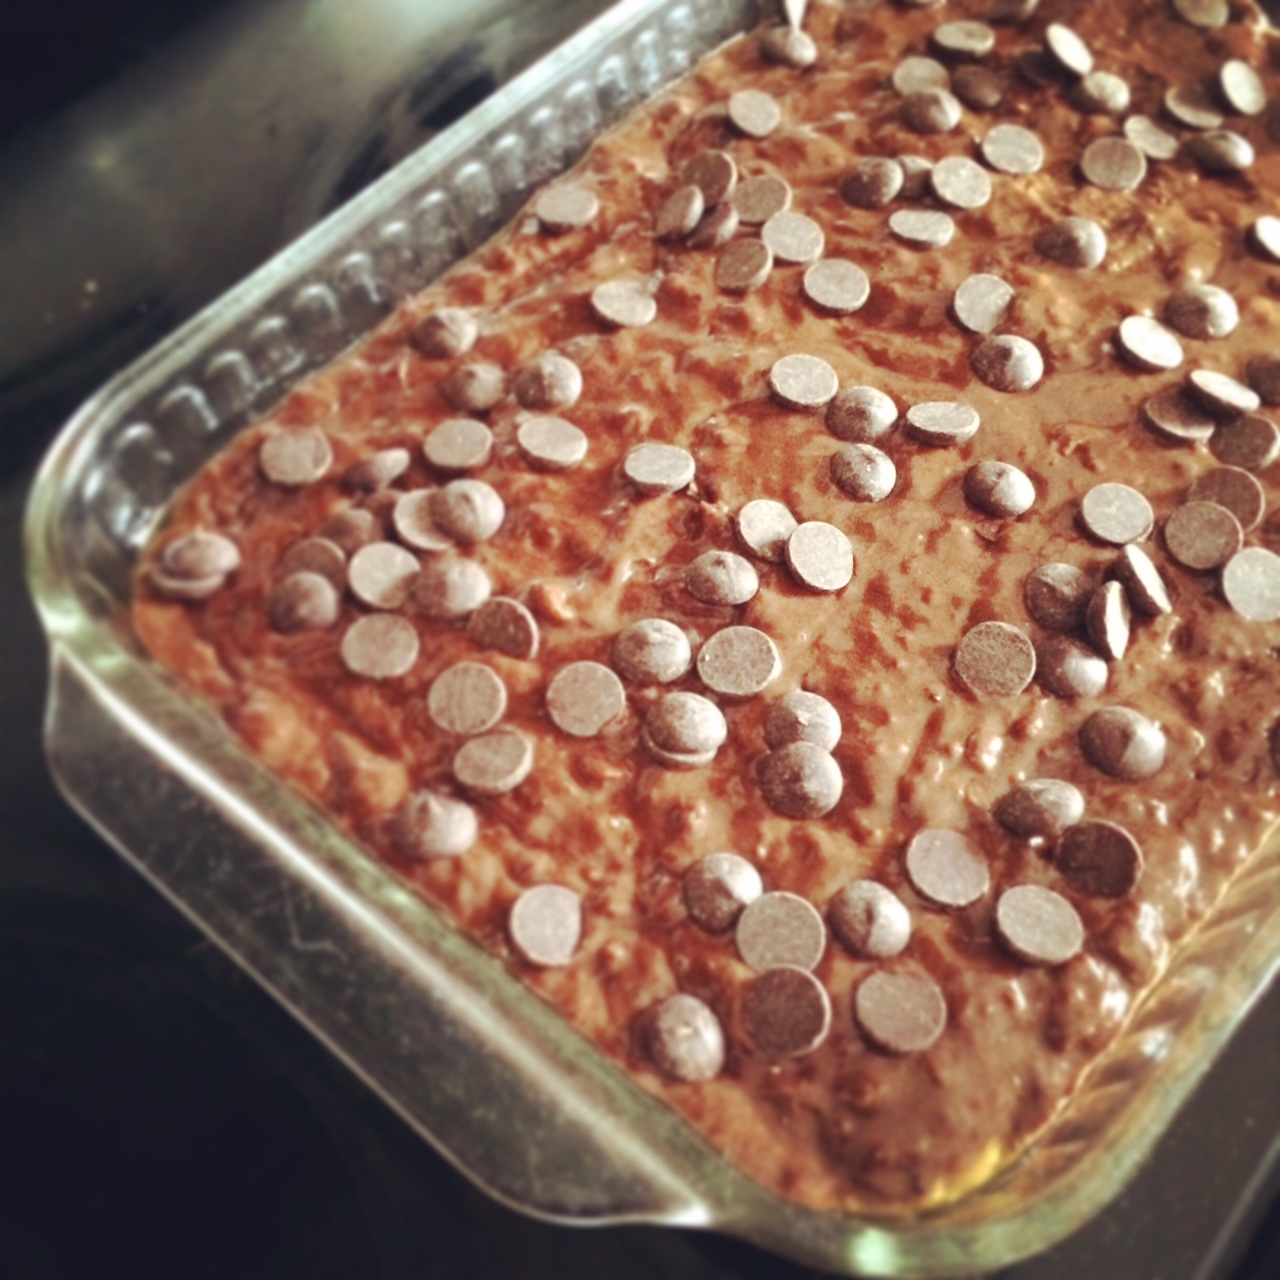 Rich chocolate and banana snackcake heads into the oven.